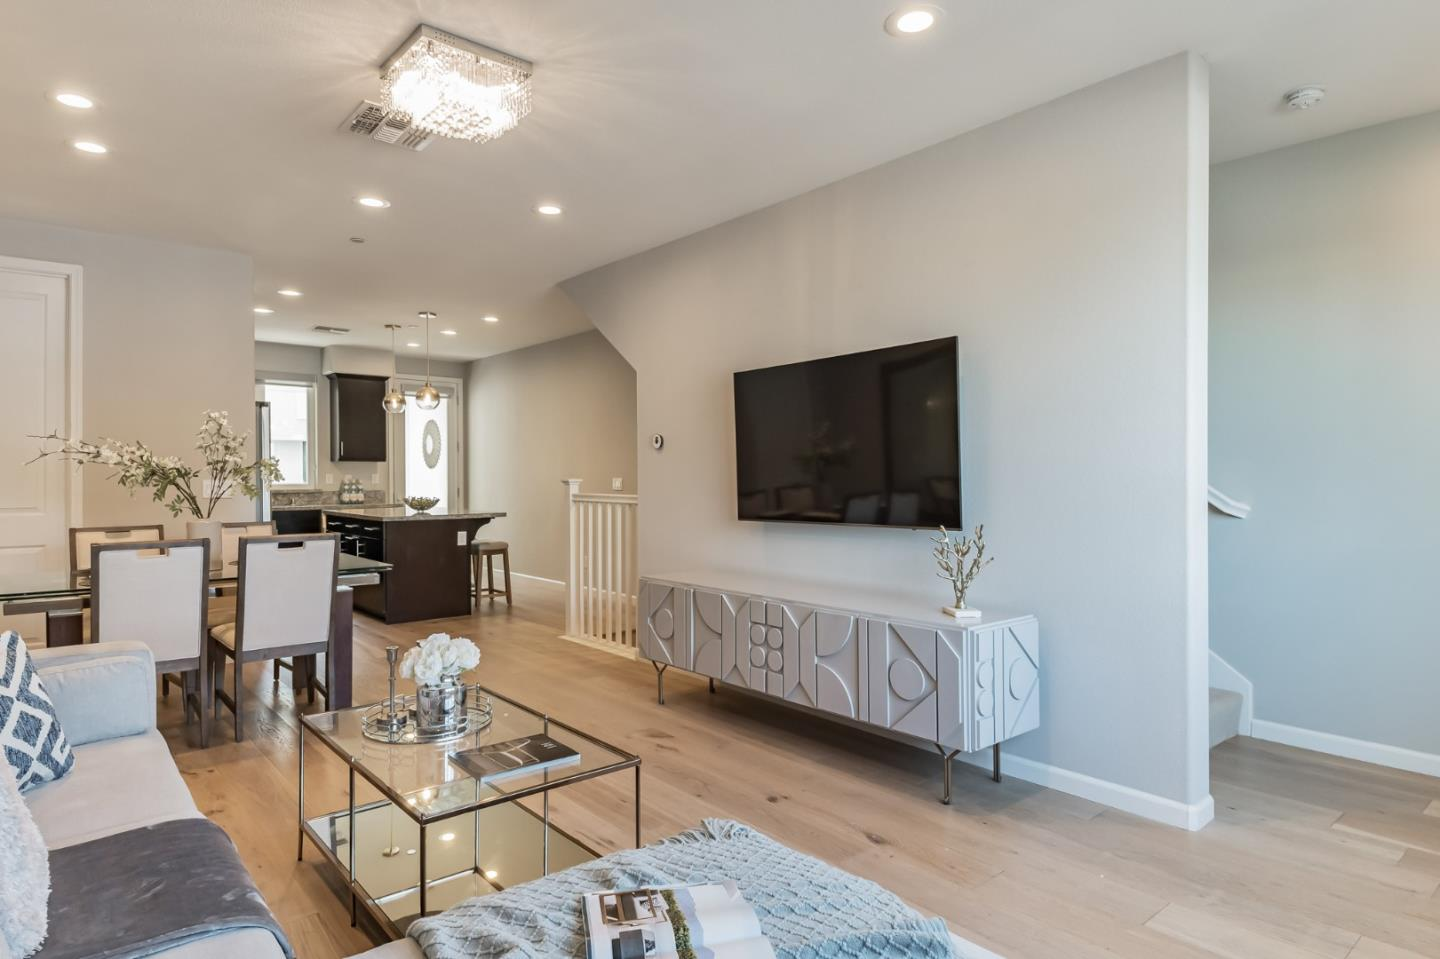 An enviable locale and a hip, convenient lifestyle are the hallmarks of life at 5506 Iron Horse Pkwy.  2018 built, 1,443 sq.ft of sophisticated and refined design in this coveted east-facing townhome style condo offers two private bedrooms, and an office / versatile space on the ground floor.  Meticulously maintained, a true move-in ready home is loaded with upgrades such as wide plank white oak flooring, brand new stair carpet, EV charger, water purifier system, and custom window shades.  Experience the best location of Dublin! Close to freeway access, shopping plaza, restaurants, and many other conveniences that are needed everyday.  Leave your car in its own attached private garage and walk to Dublin/Pleasanton Bart station.  Don't forget the community's  five-star amenities & the new 14,500 sq. ft recreation center that has fitness rooms, a game room, lounge spaces, & pools.